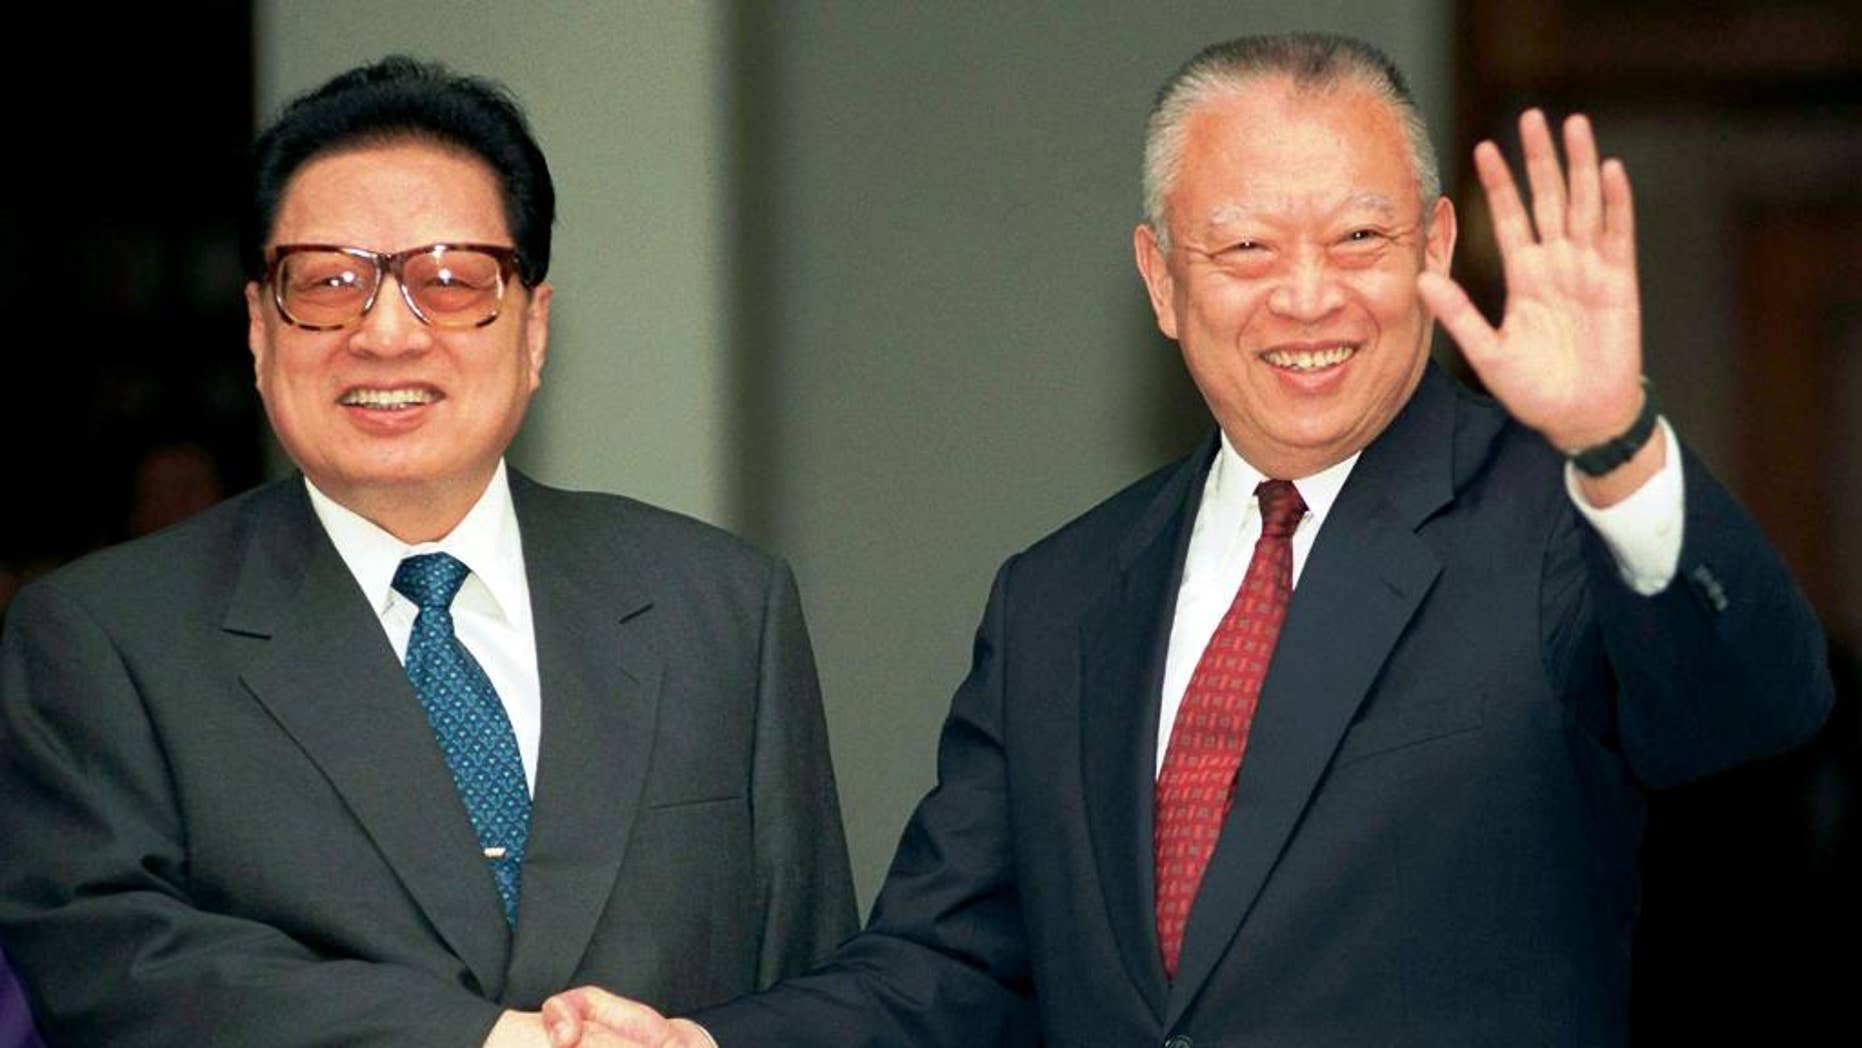 FILE - In this Feb.11, 1998 file photo, then Hong Kong leader Tung Chee-hwa, right, waves to photographers while shaking hands with then China's legislative leader Qiao Shi outside Government House in Hong Kong. Qiao Shi, a senior Communist Party official and chairman of China's legislature in the 1990s, died Sunday, June 14, 2015 at the age of 91, state media said. (AP Photo/Anat Givon, File)